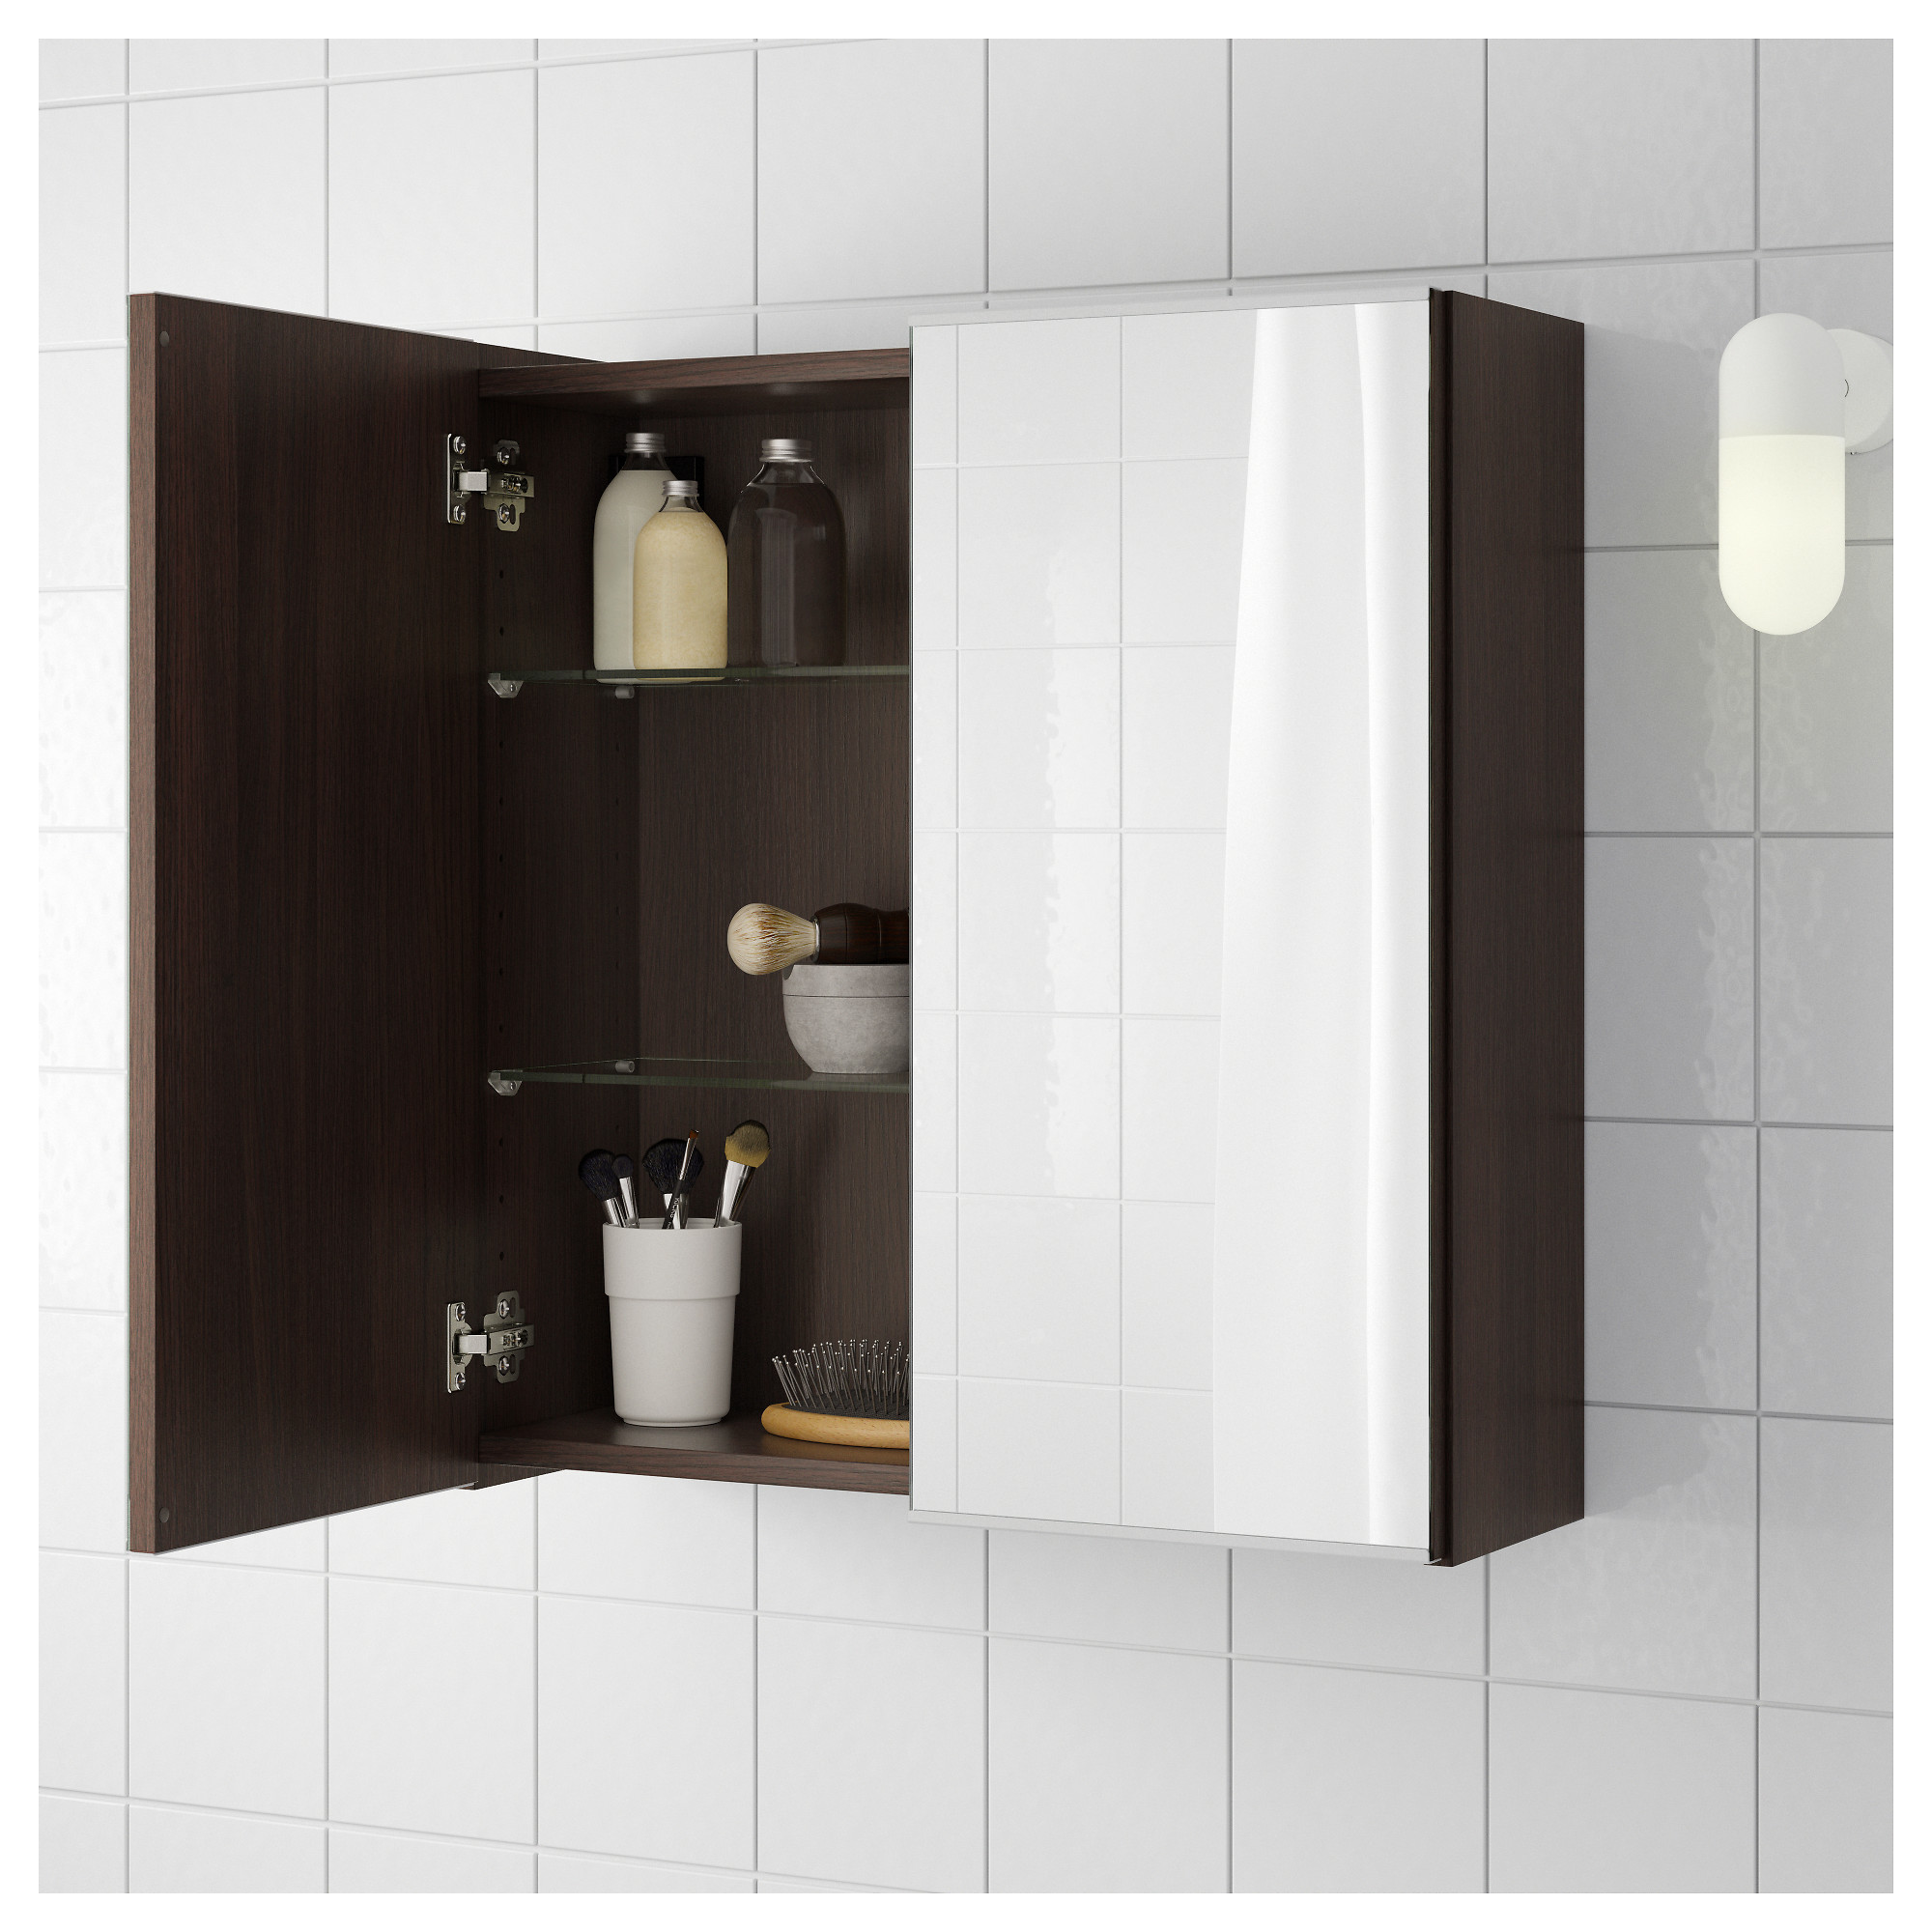 LILLNGEN Mirror Cabinet With 2 Doors